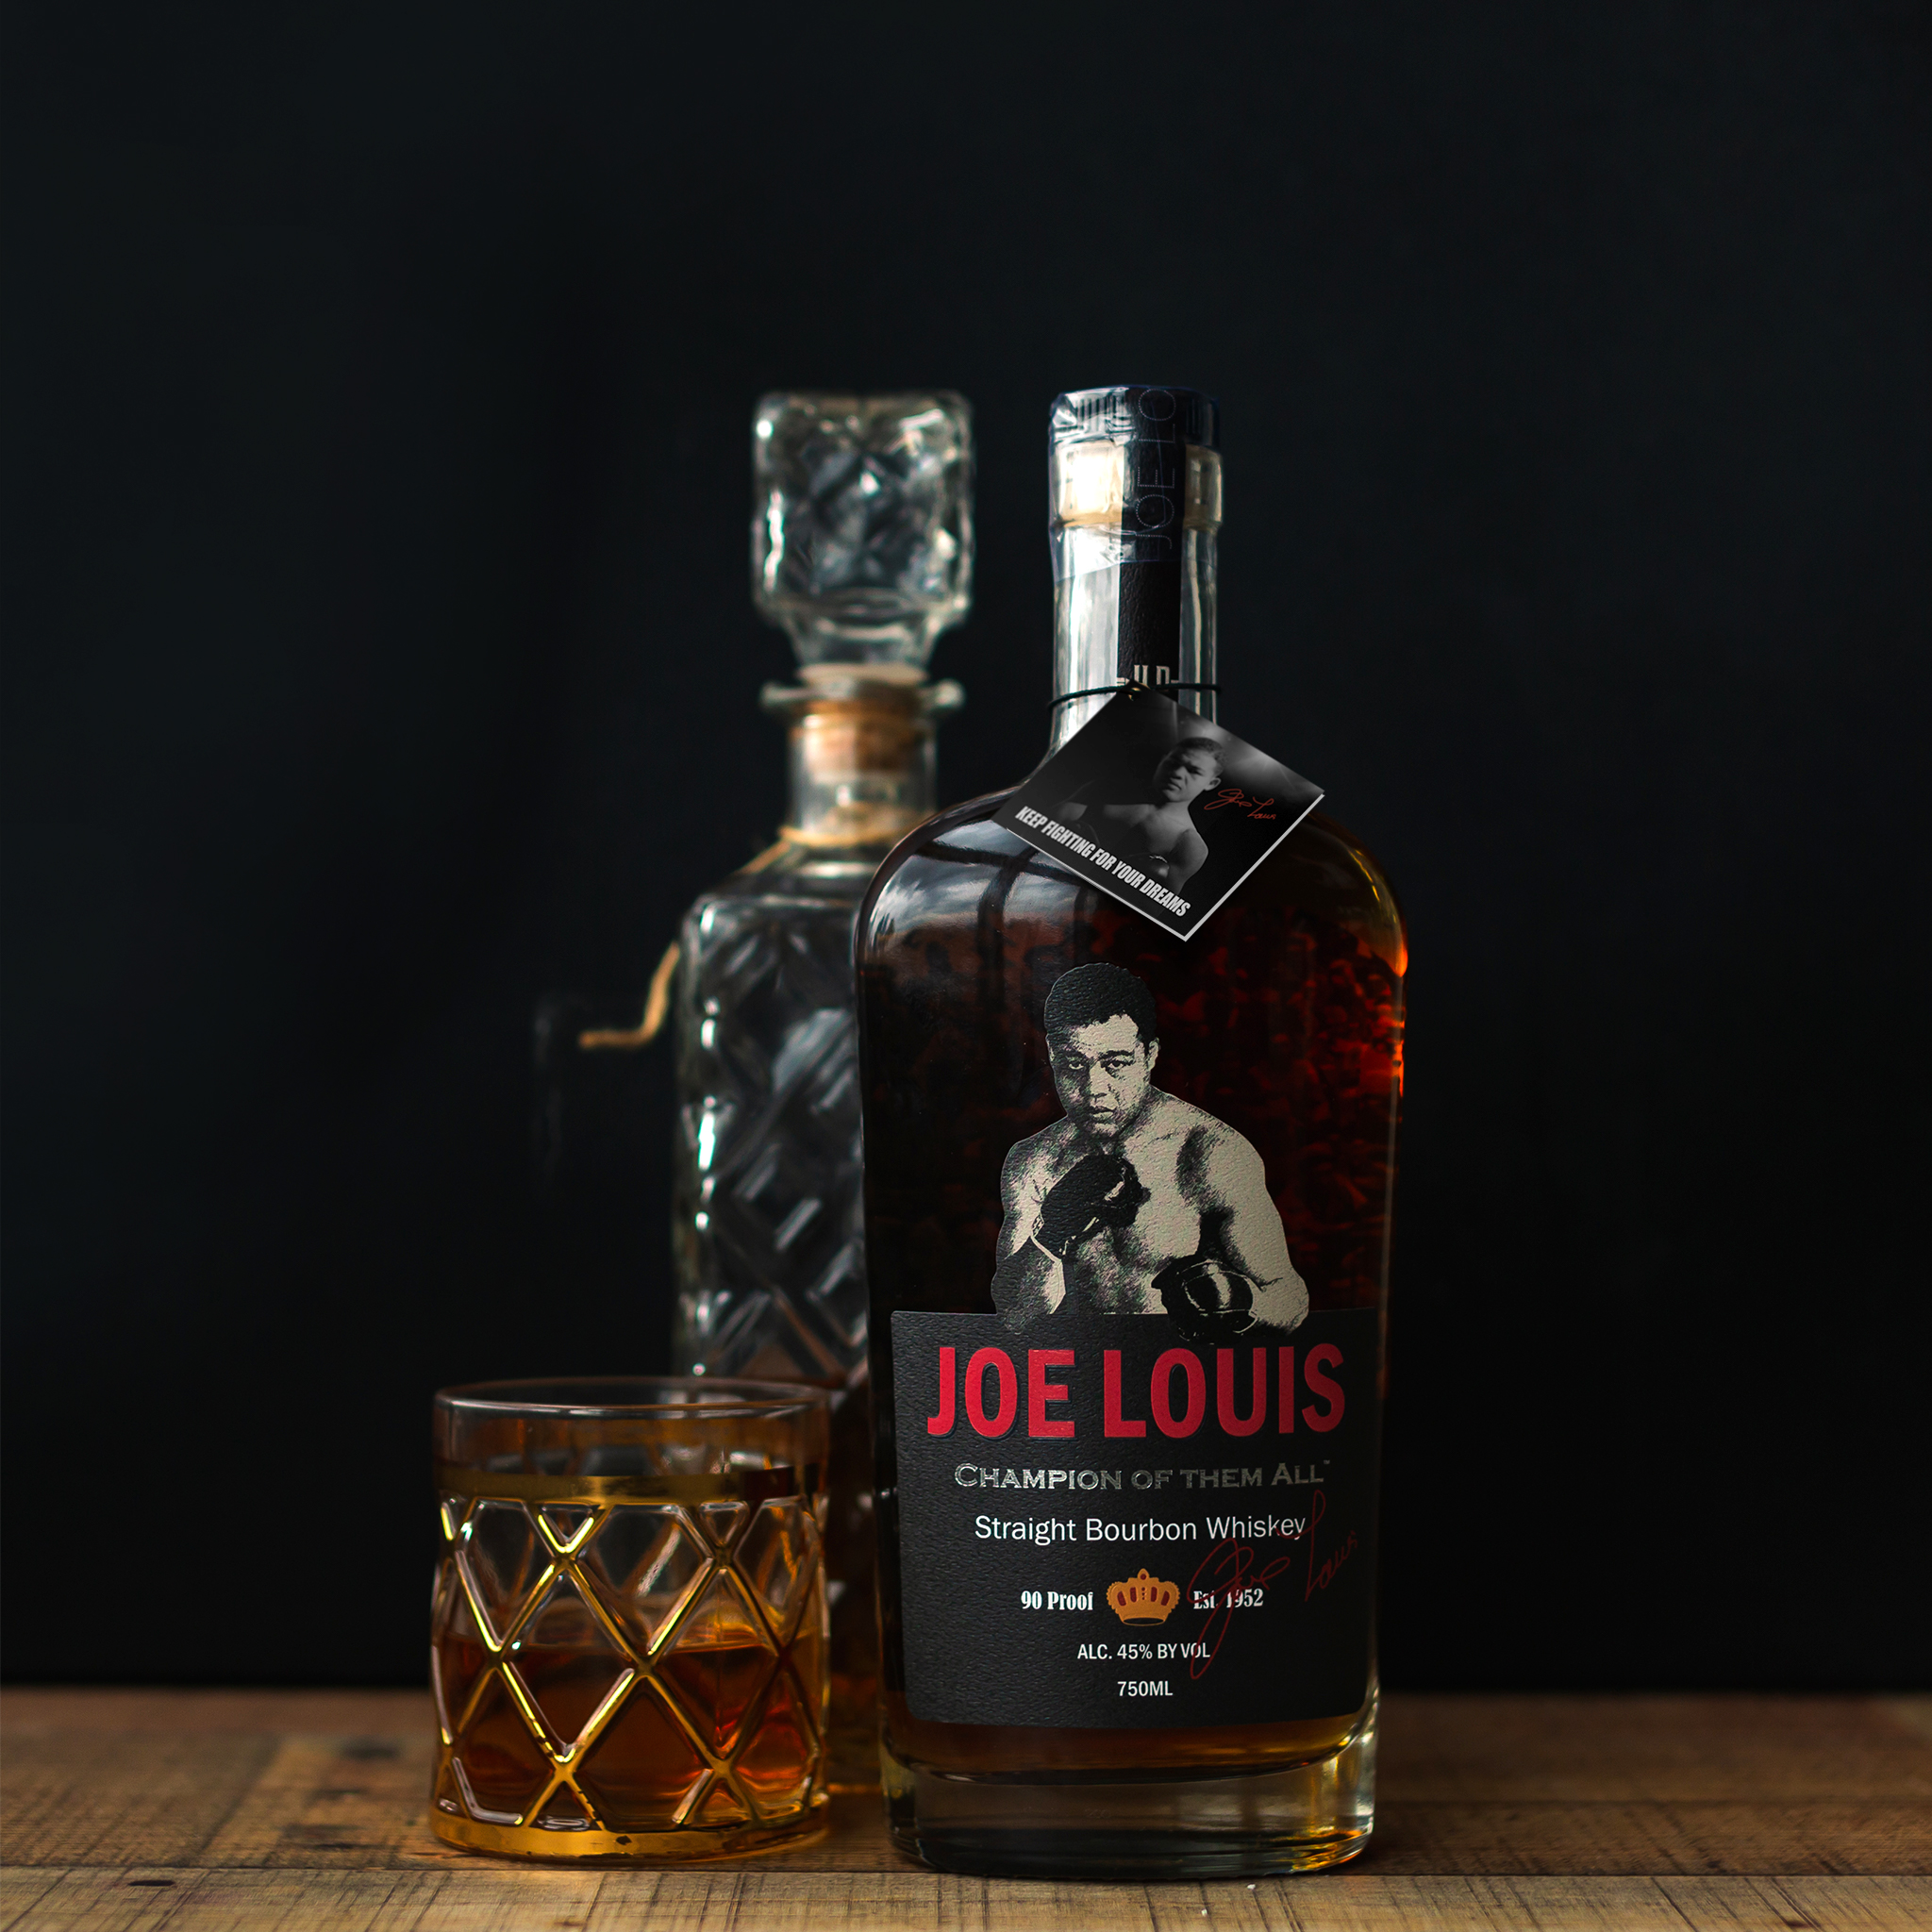 Joe Louis Bourbon Champion of them all - bottle, black background